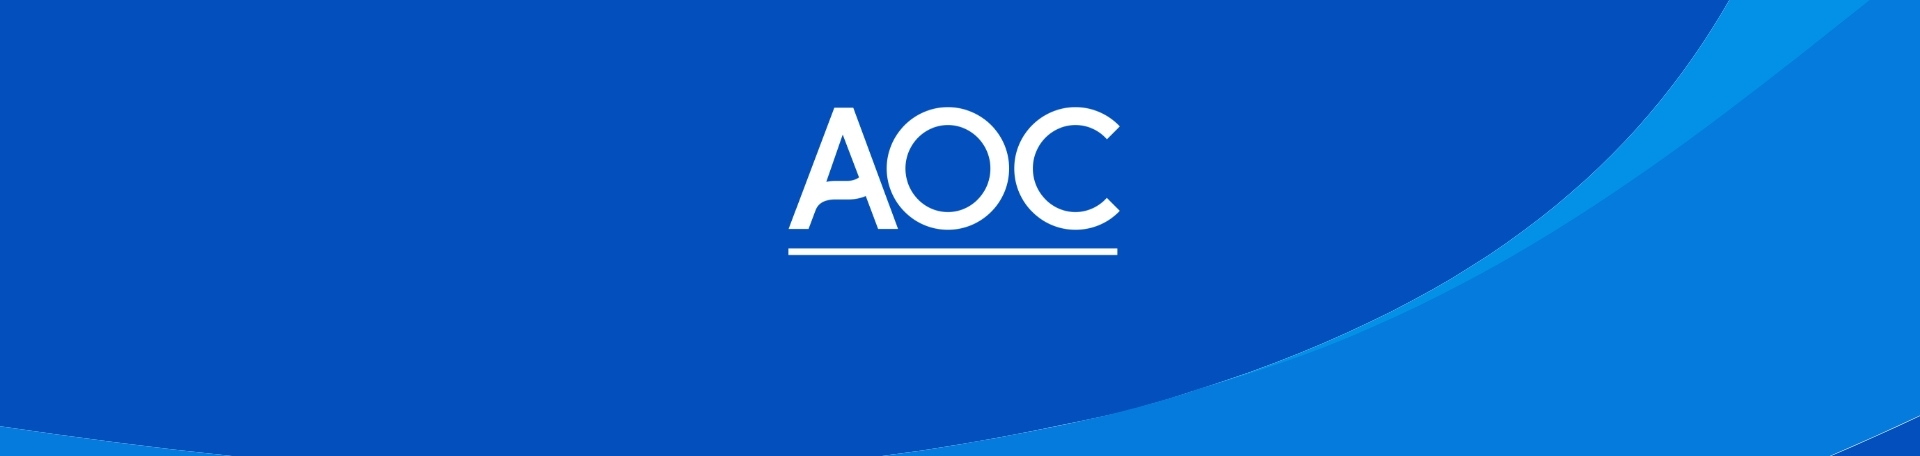 AOC Aliancys Announces Changes to its European Distribution Set-Up